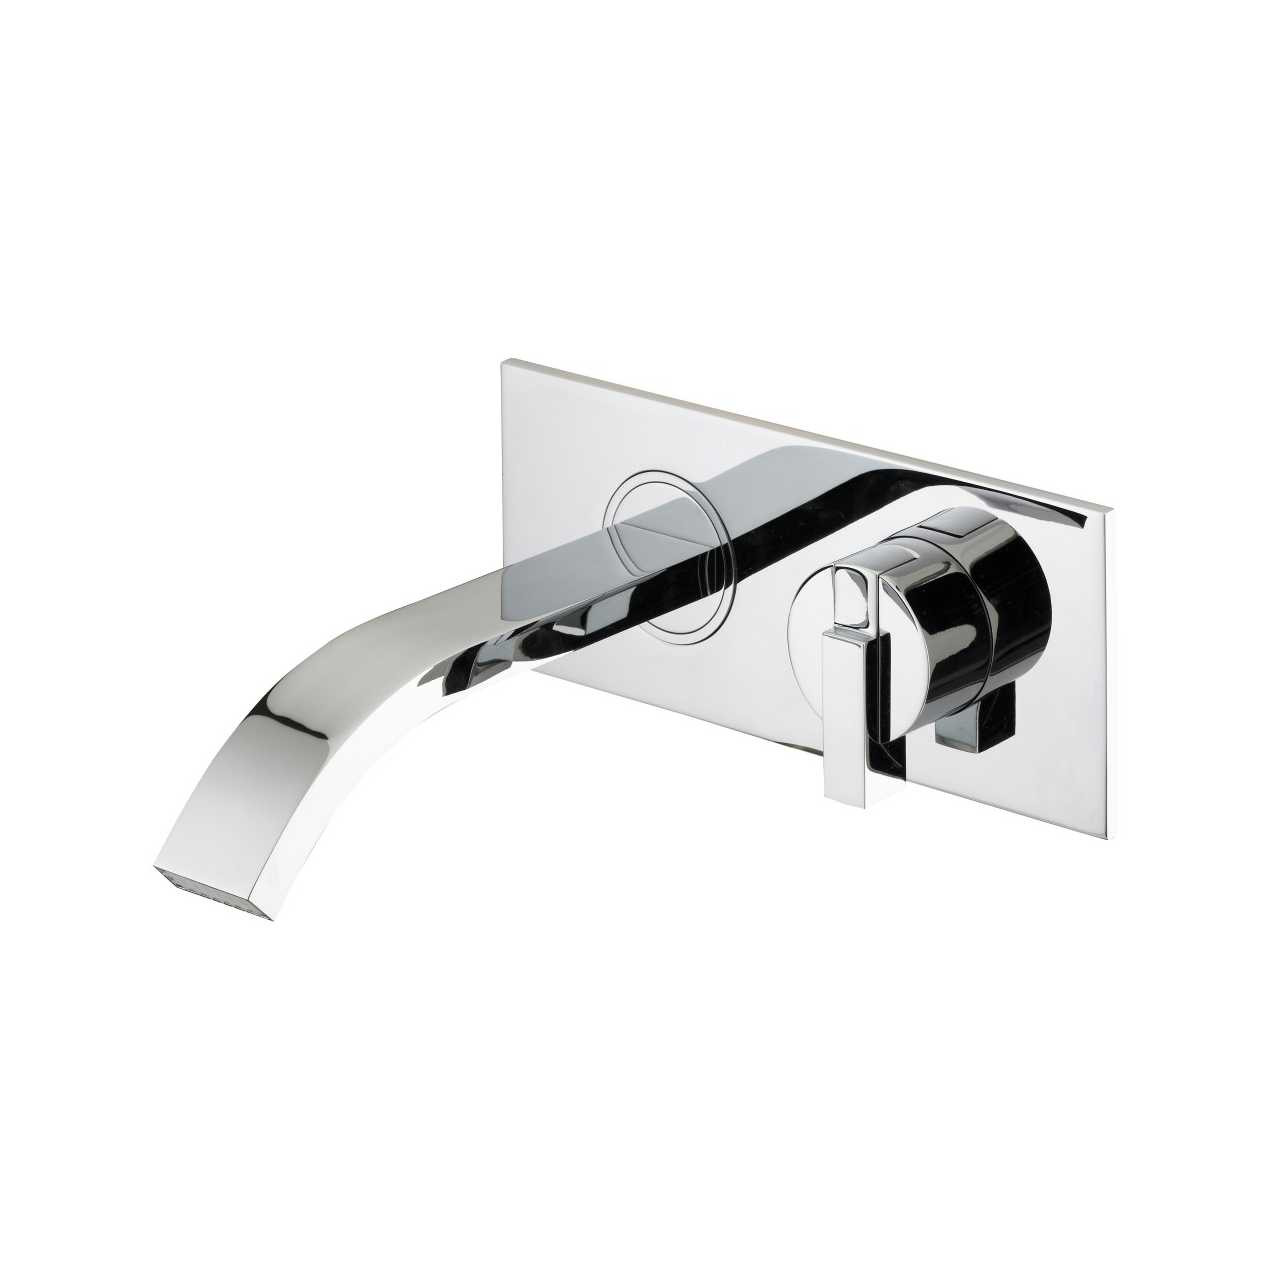 Bristan Chill Chrome Wall Mounted Bath Filler Tap - CL-WMBF-C